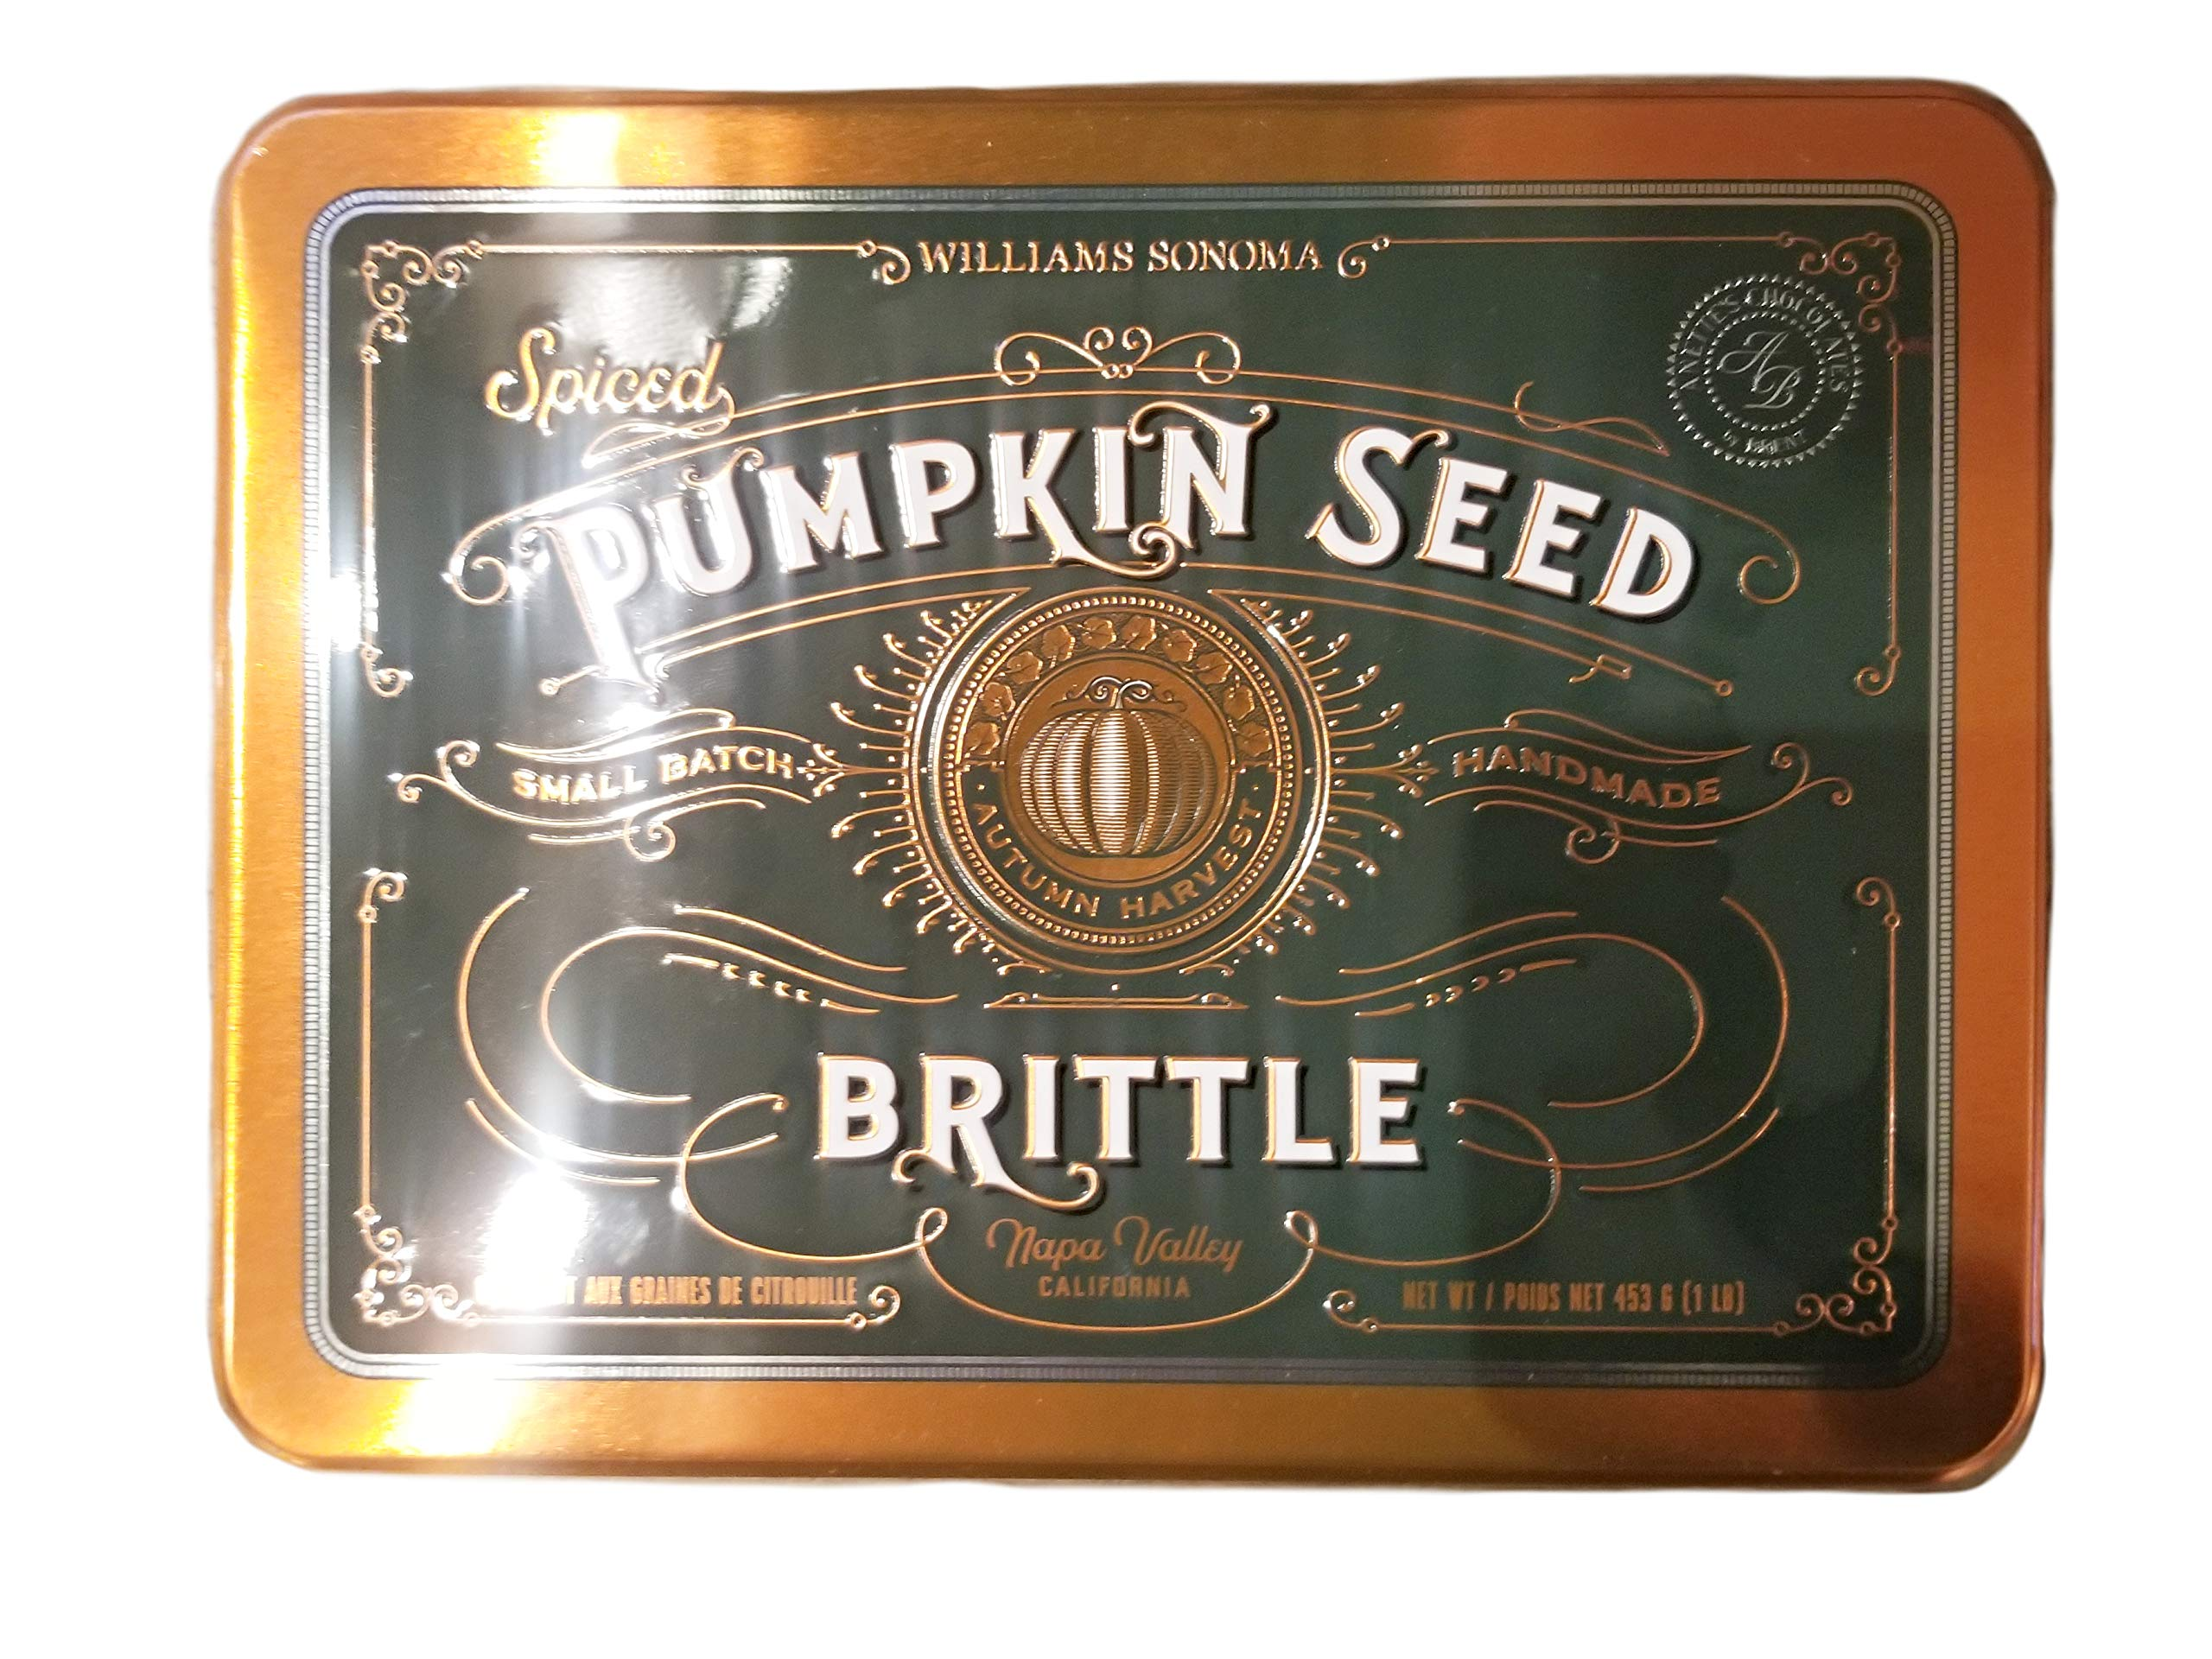 Williams Sonoma Spiced Pumpkin Seed Brittle - 1 Lb. Tin by FCV